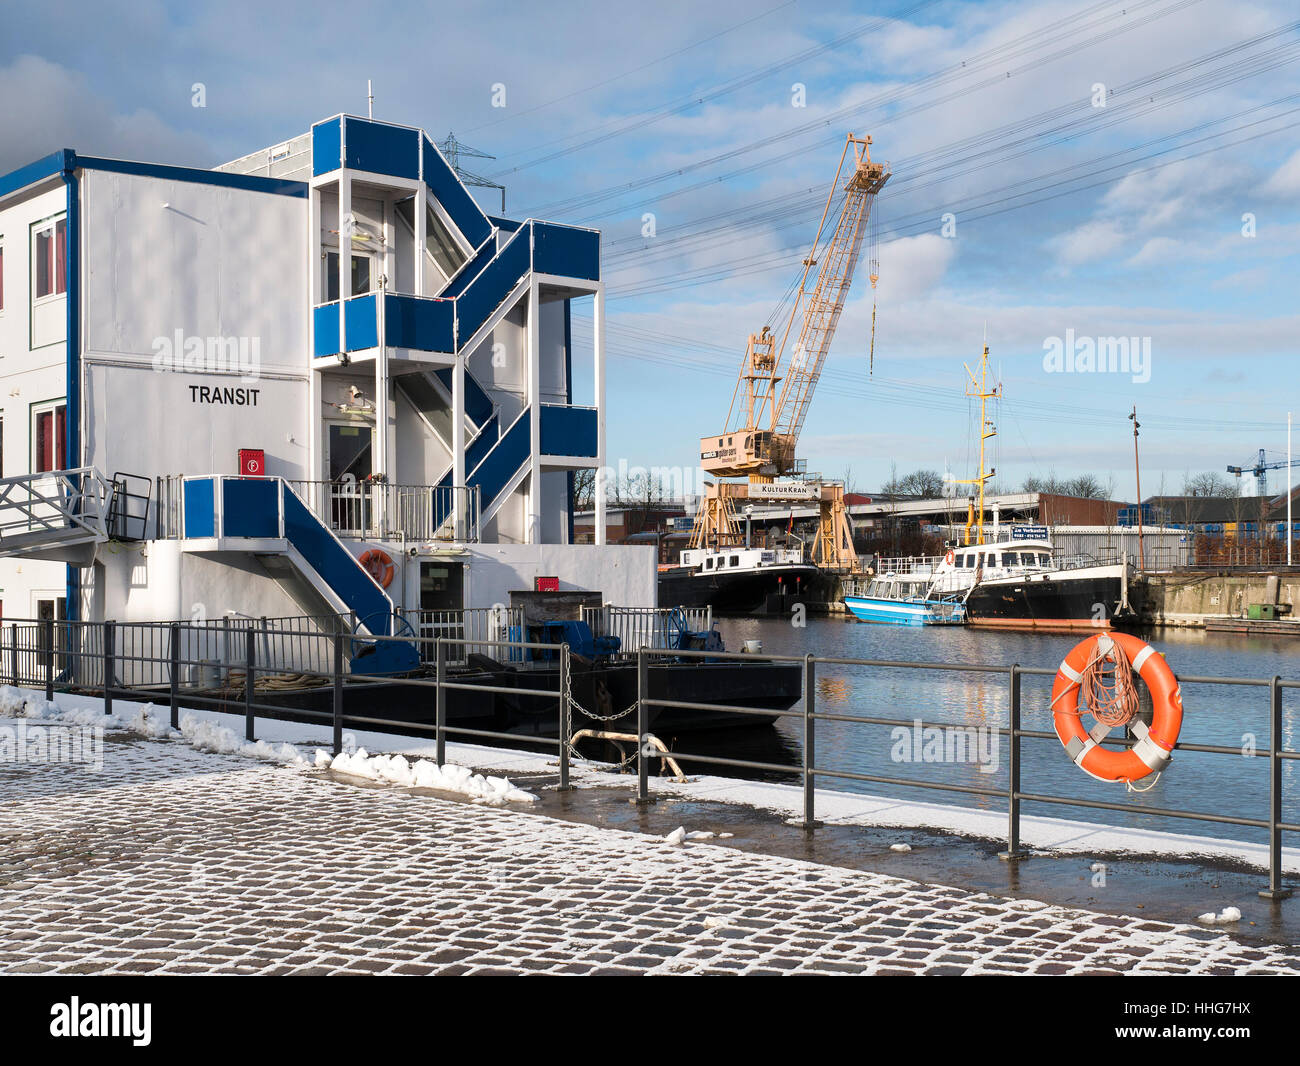 Houseboat for refugees  at Harburg Harbour, Hamburg, Germany Europe - Stock Image